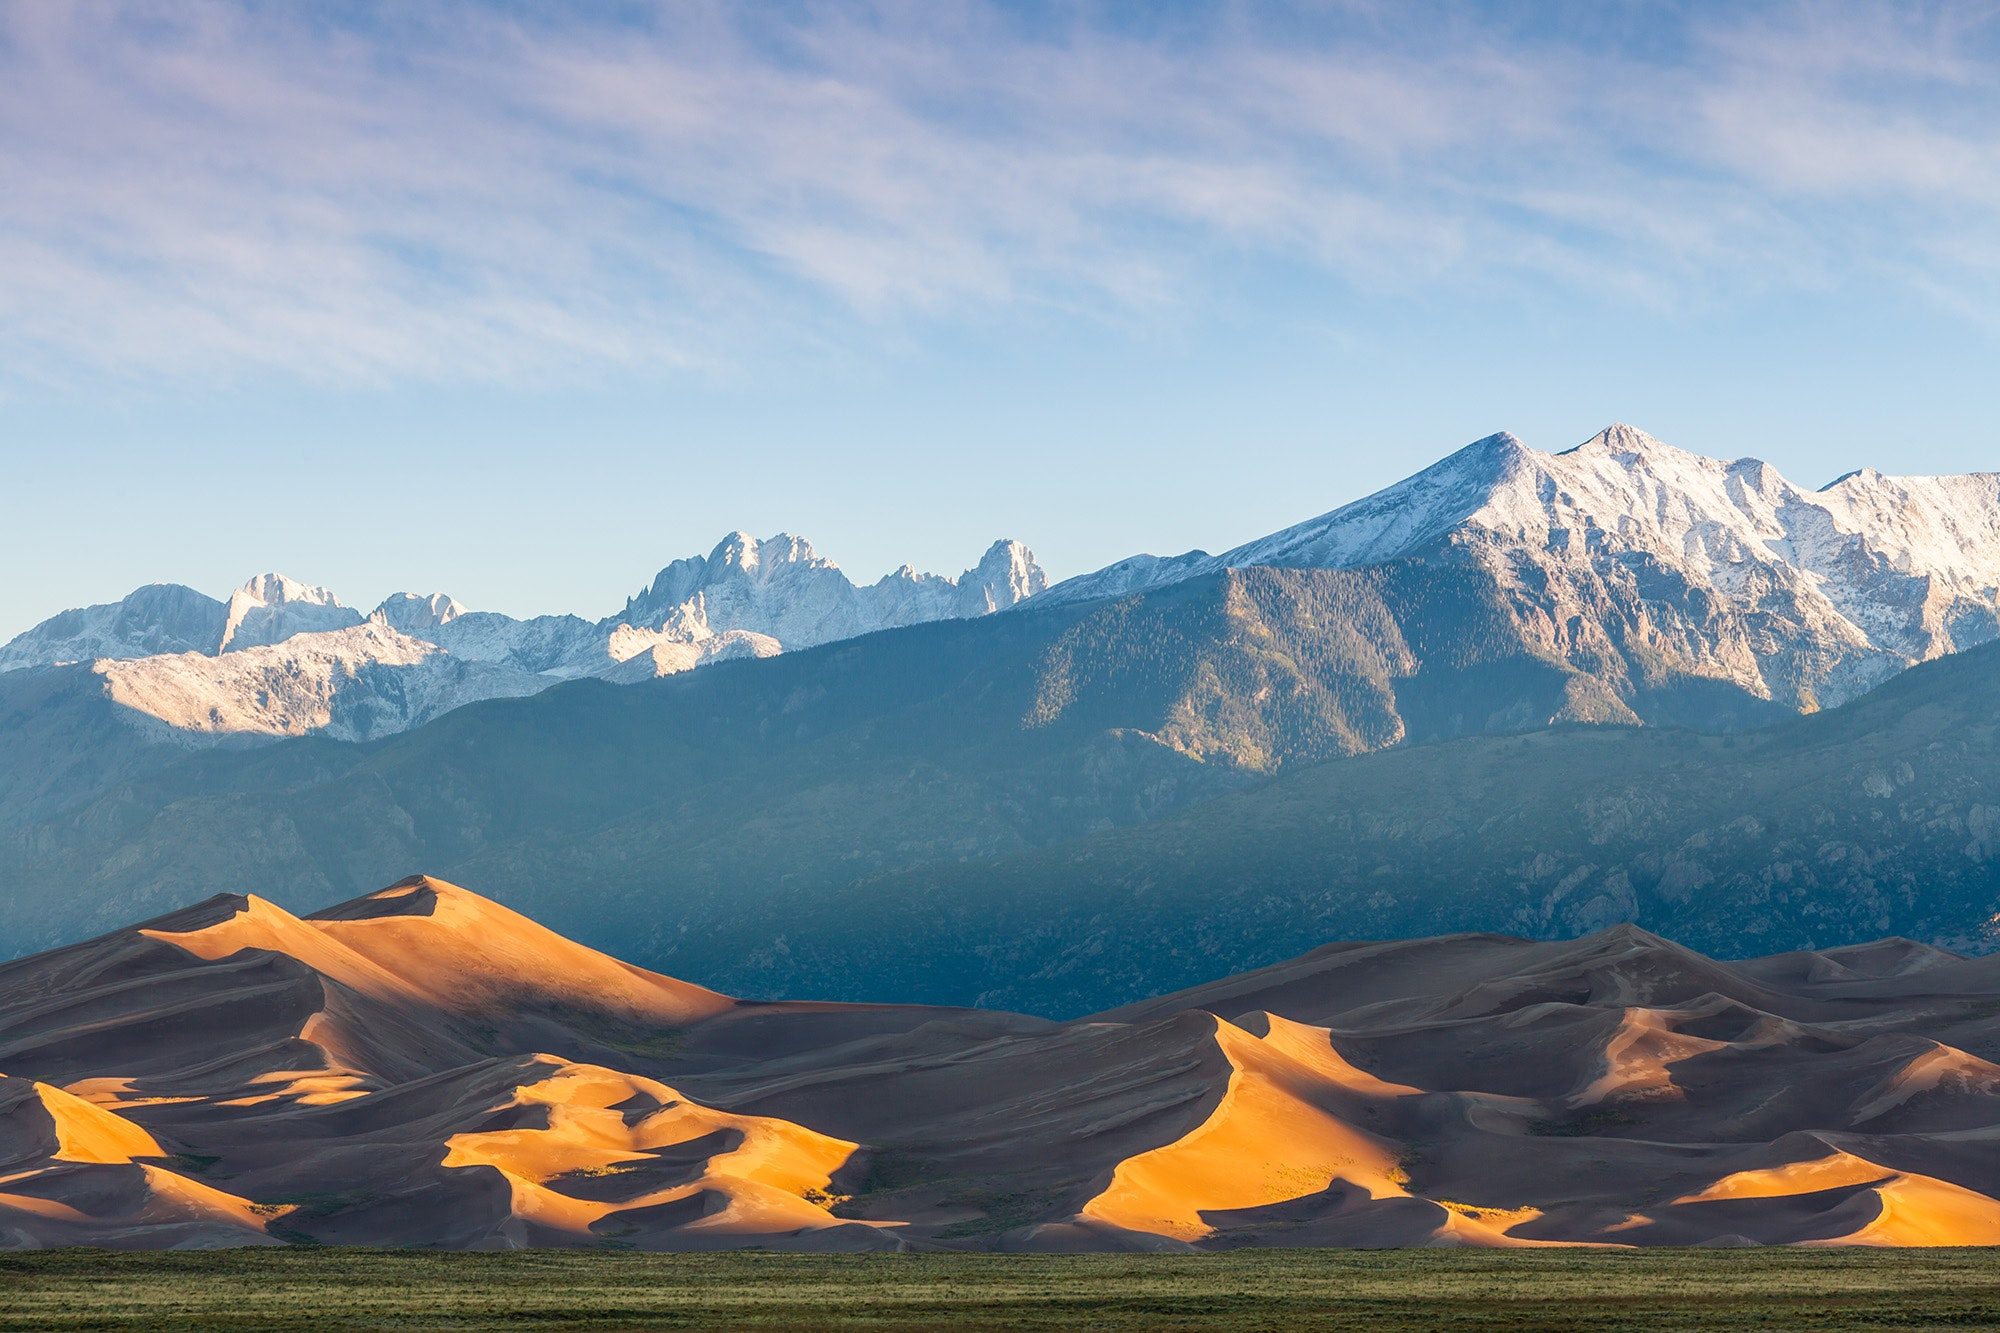 A surprising site in the mountains of Colorado, Great Sand Dunes National Park and Preserve looks like a mini Sahara Desert.